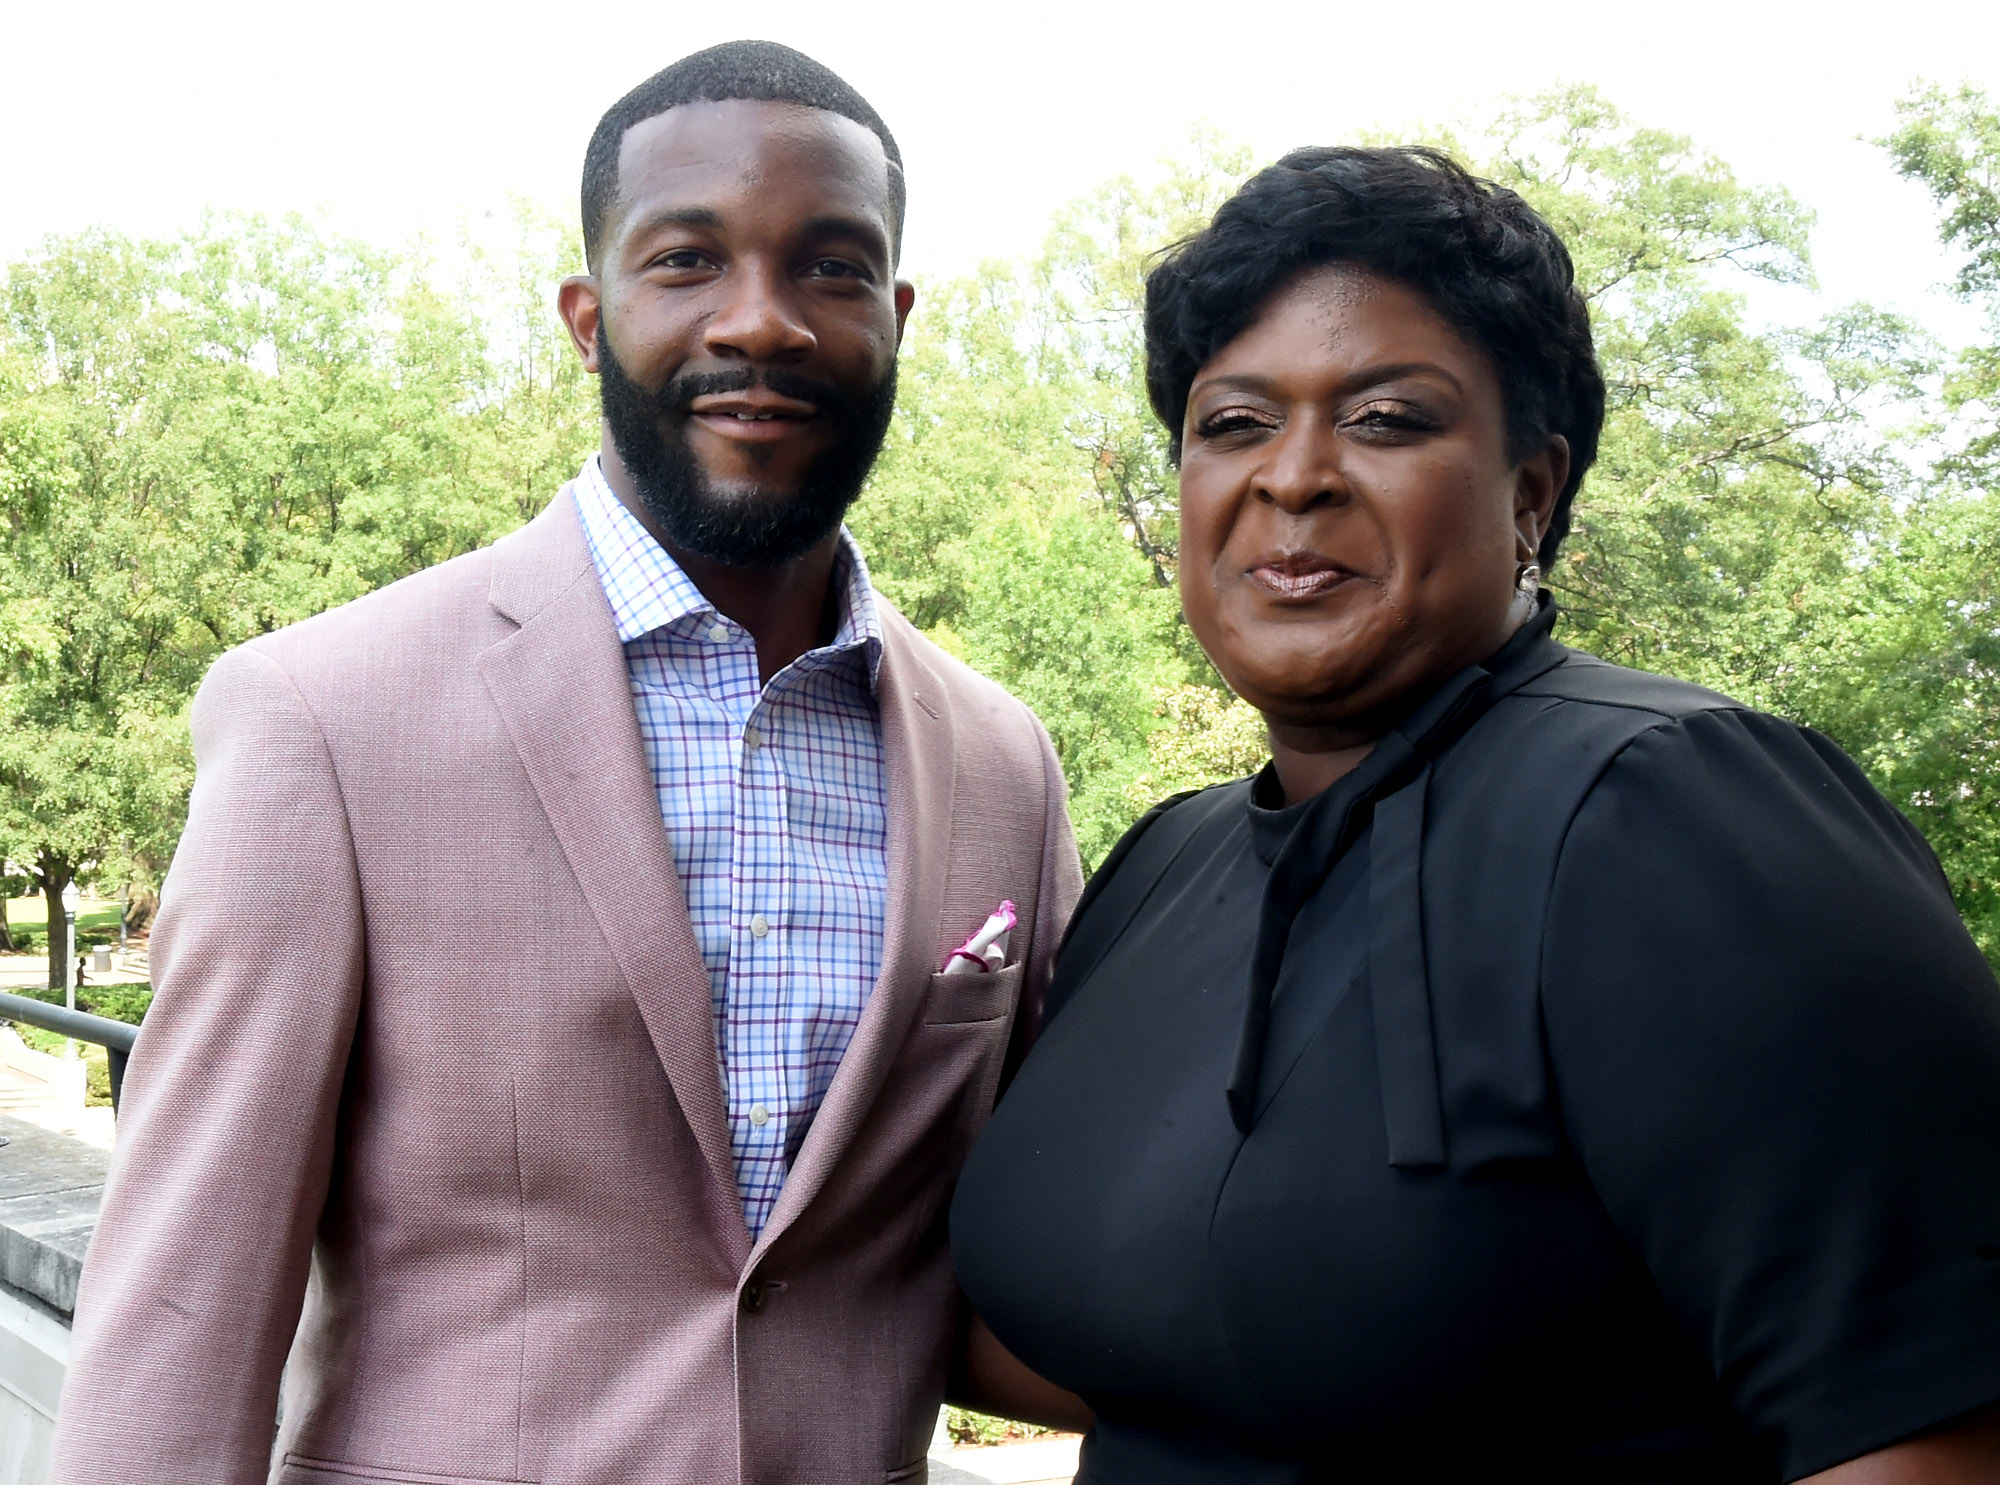 Woodfin and Herring: A Promising Future for Birmingham